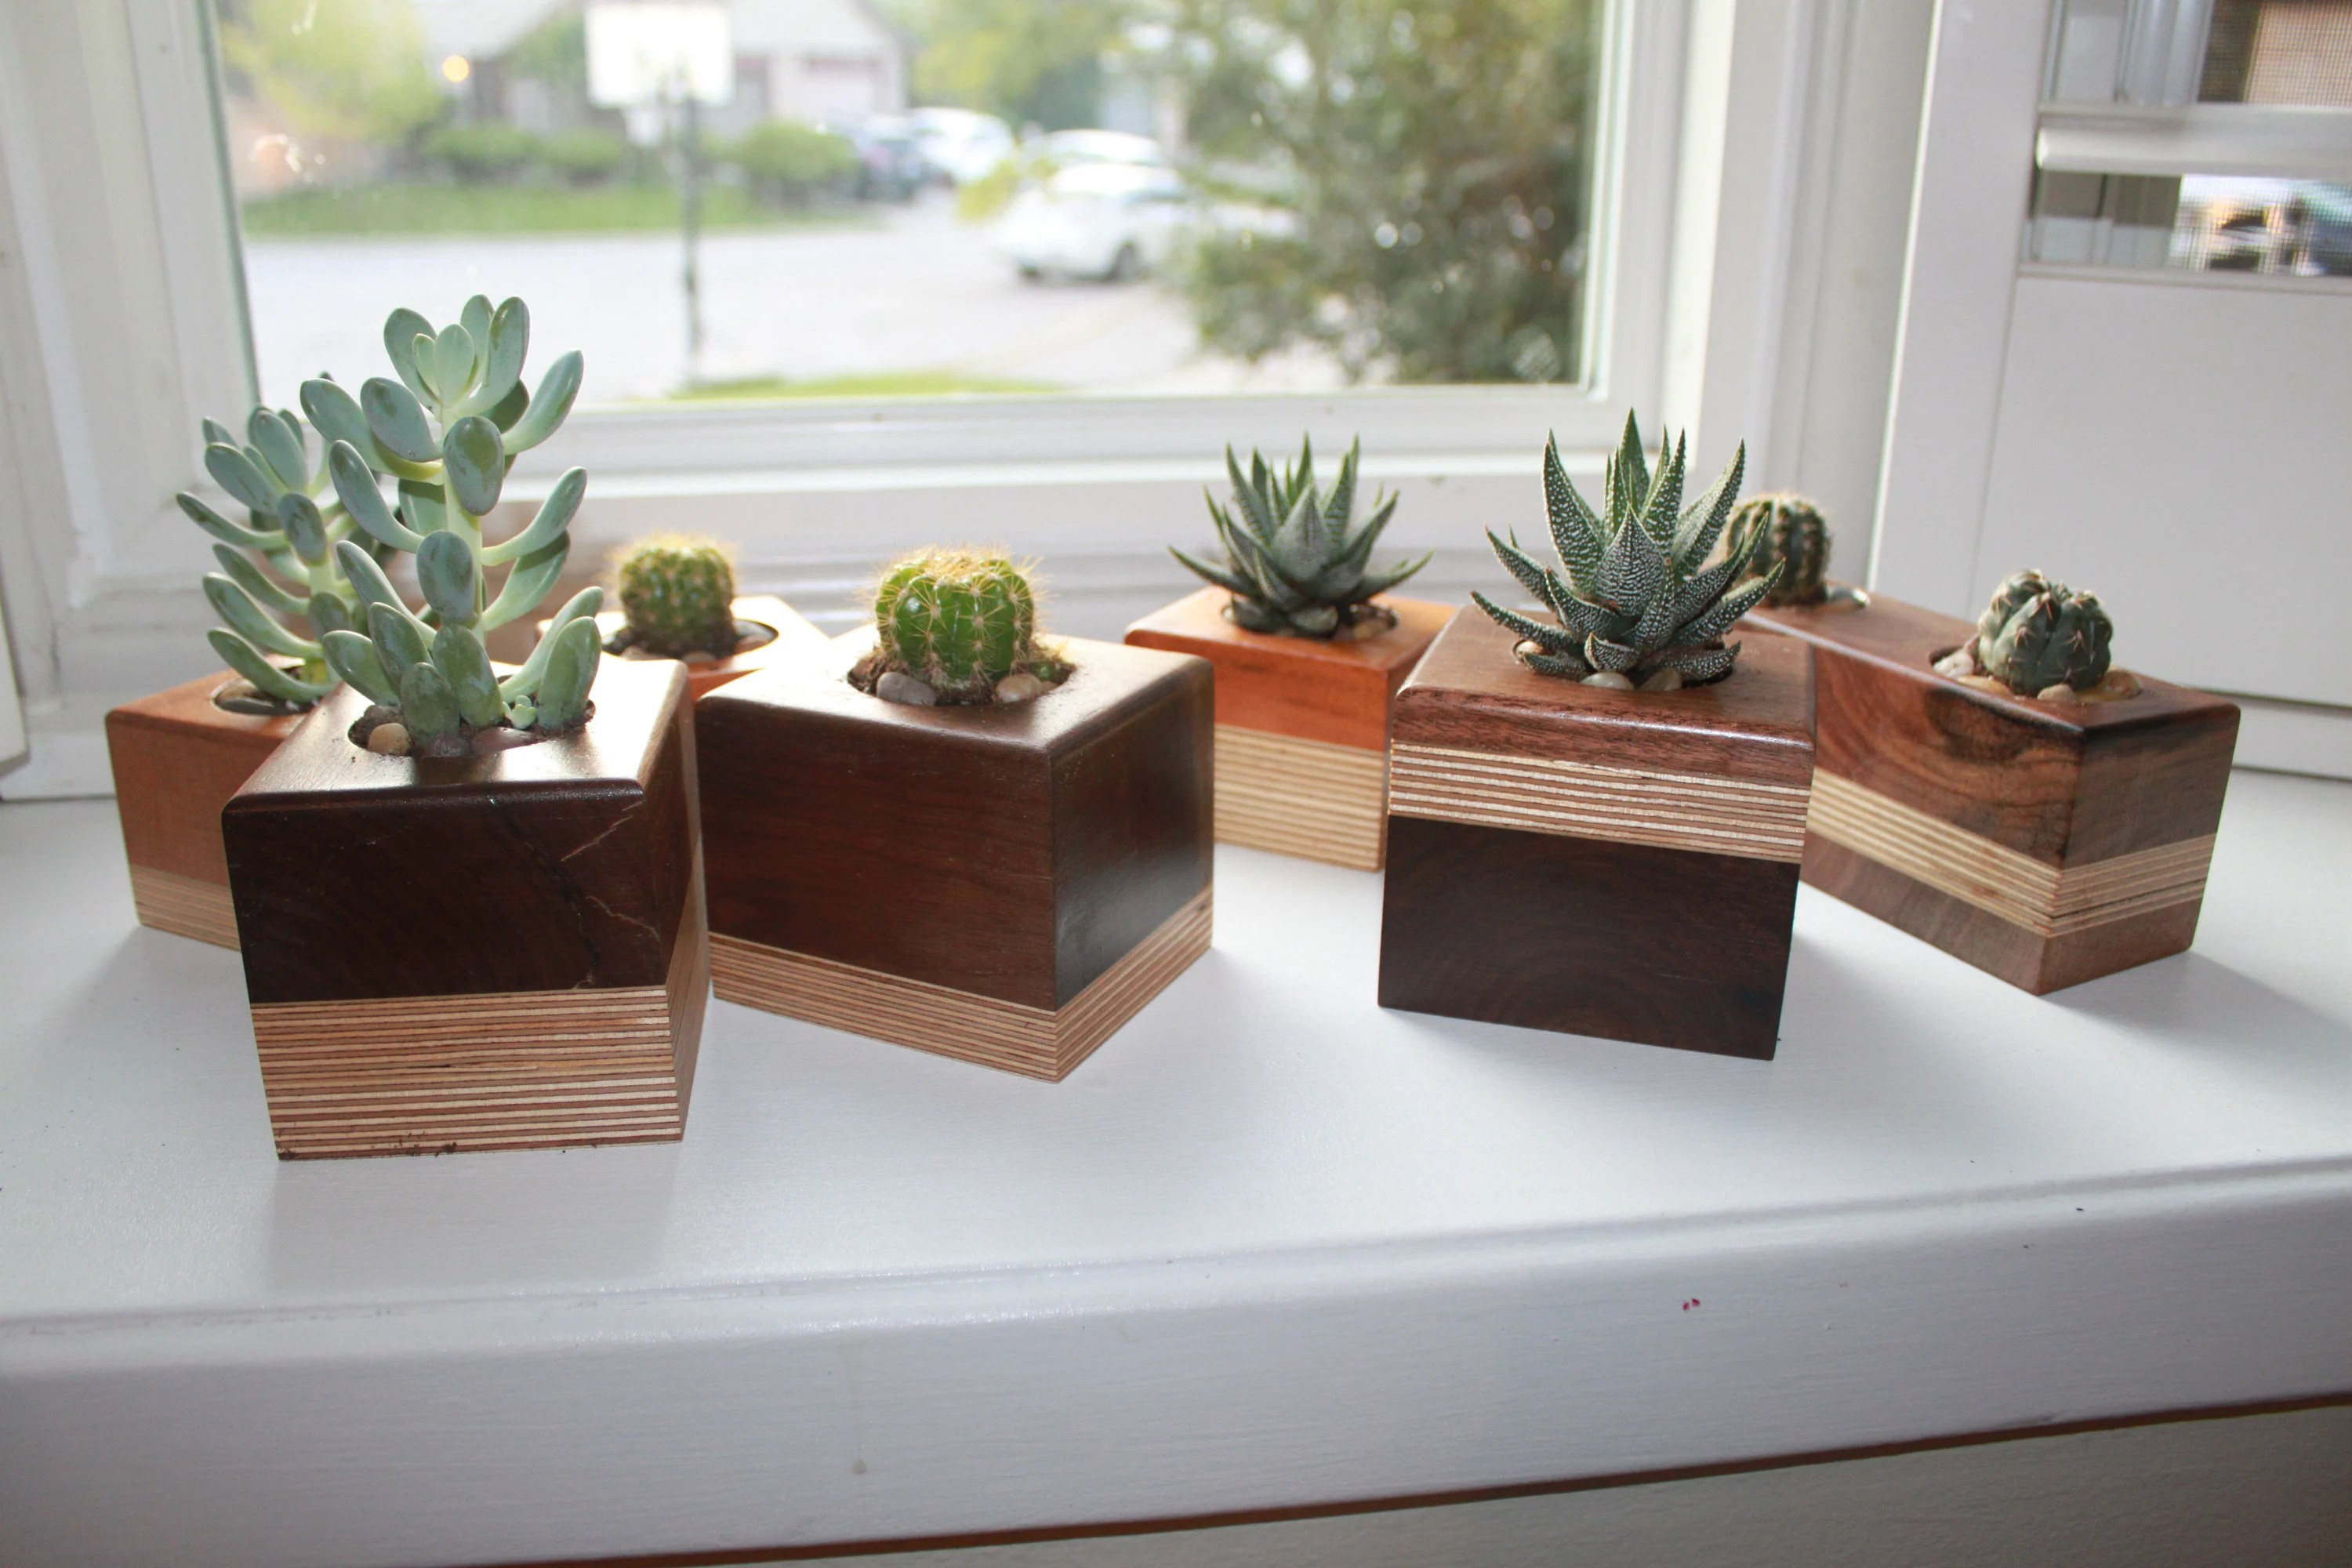 Weinregal Cactus Succulent Planters Unique Wood Cactus Succulent Planters Mother S Day Gift Wedding Anniversary Gift